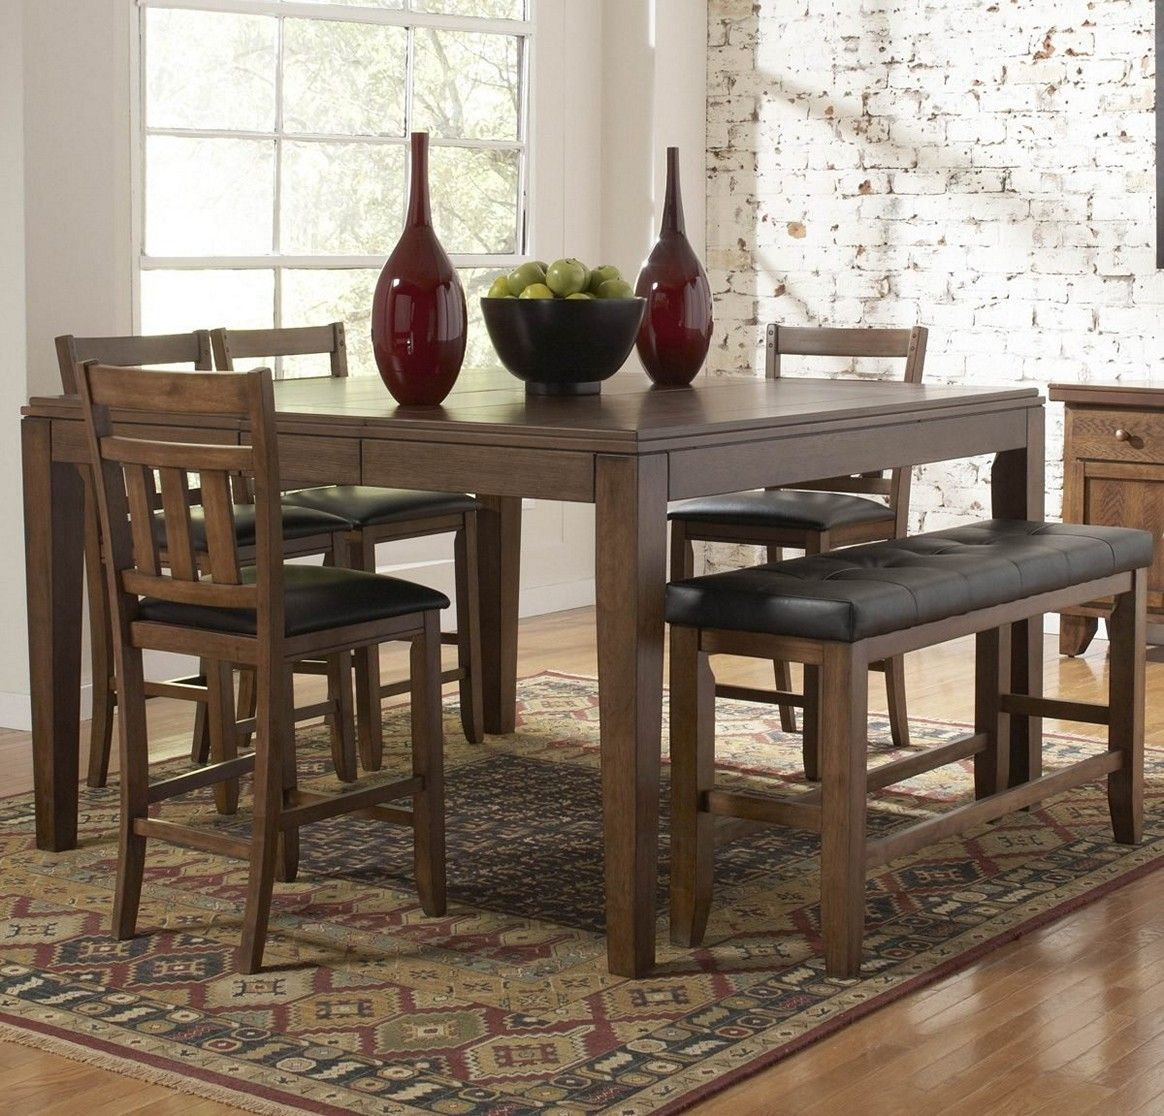 For Your Casual Dining E The Kai Collection Provides Ample Seating Family And Friends This Set Is Counter Height Chairs Have